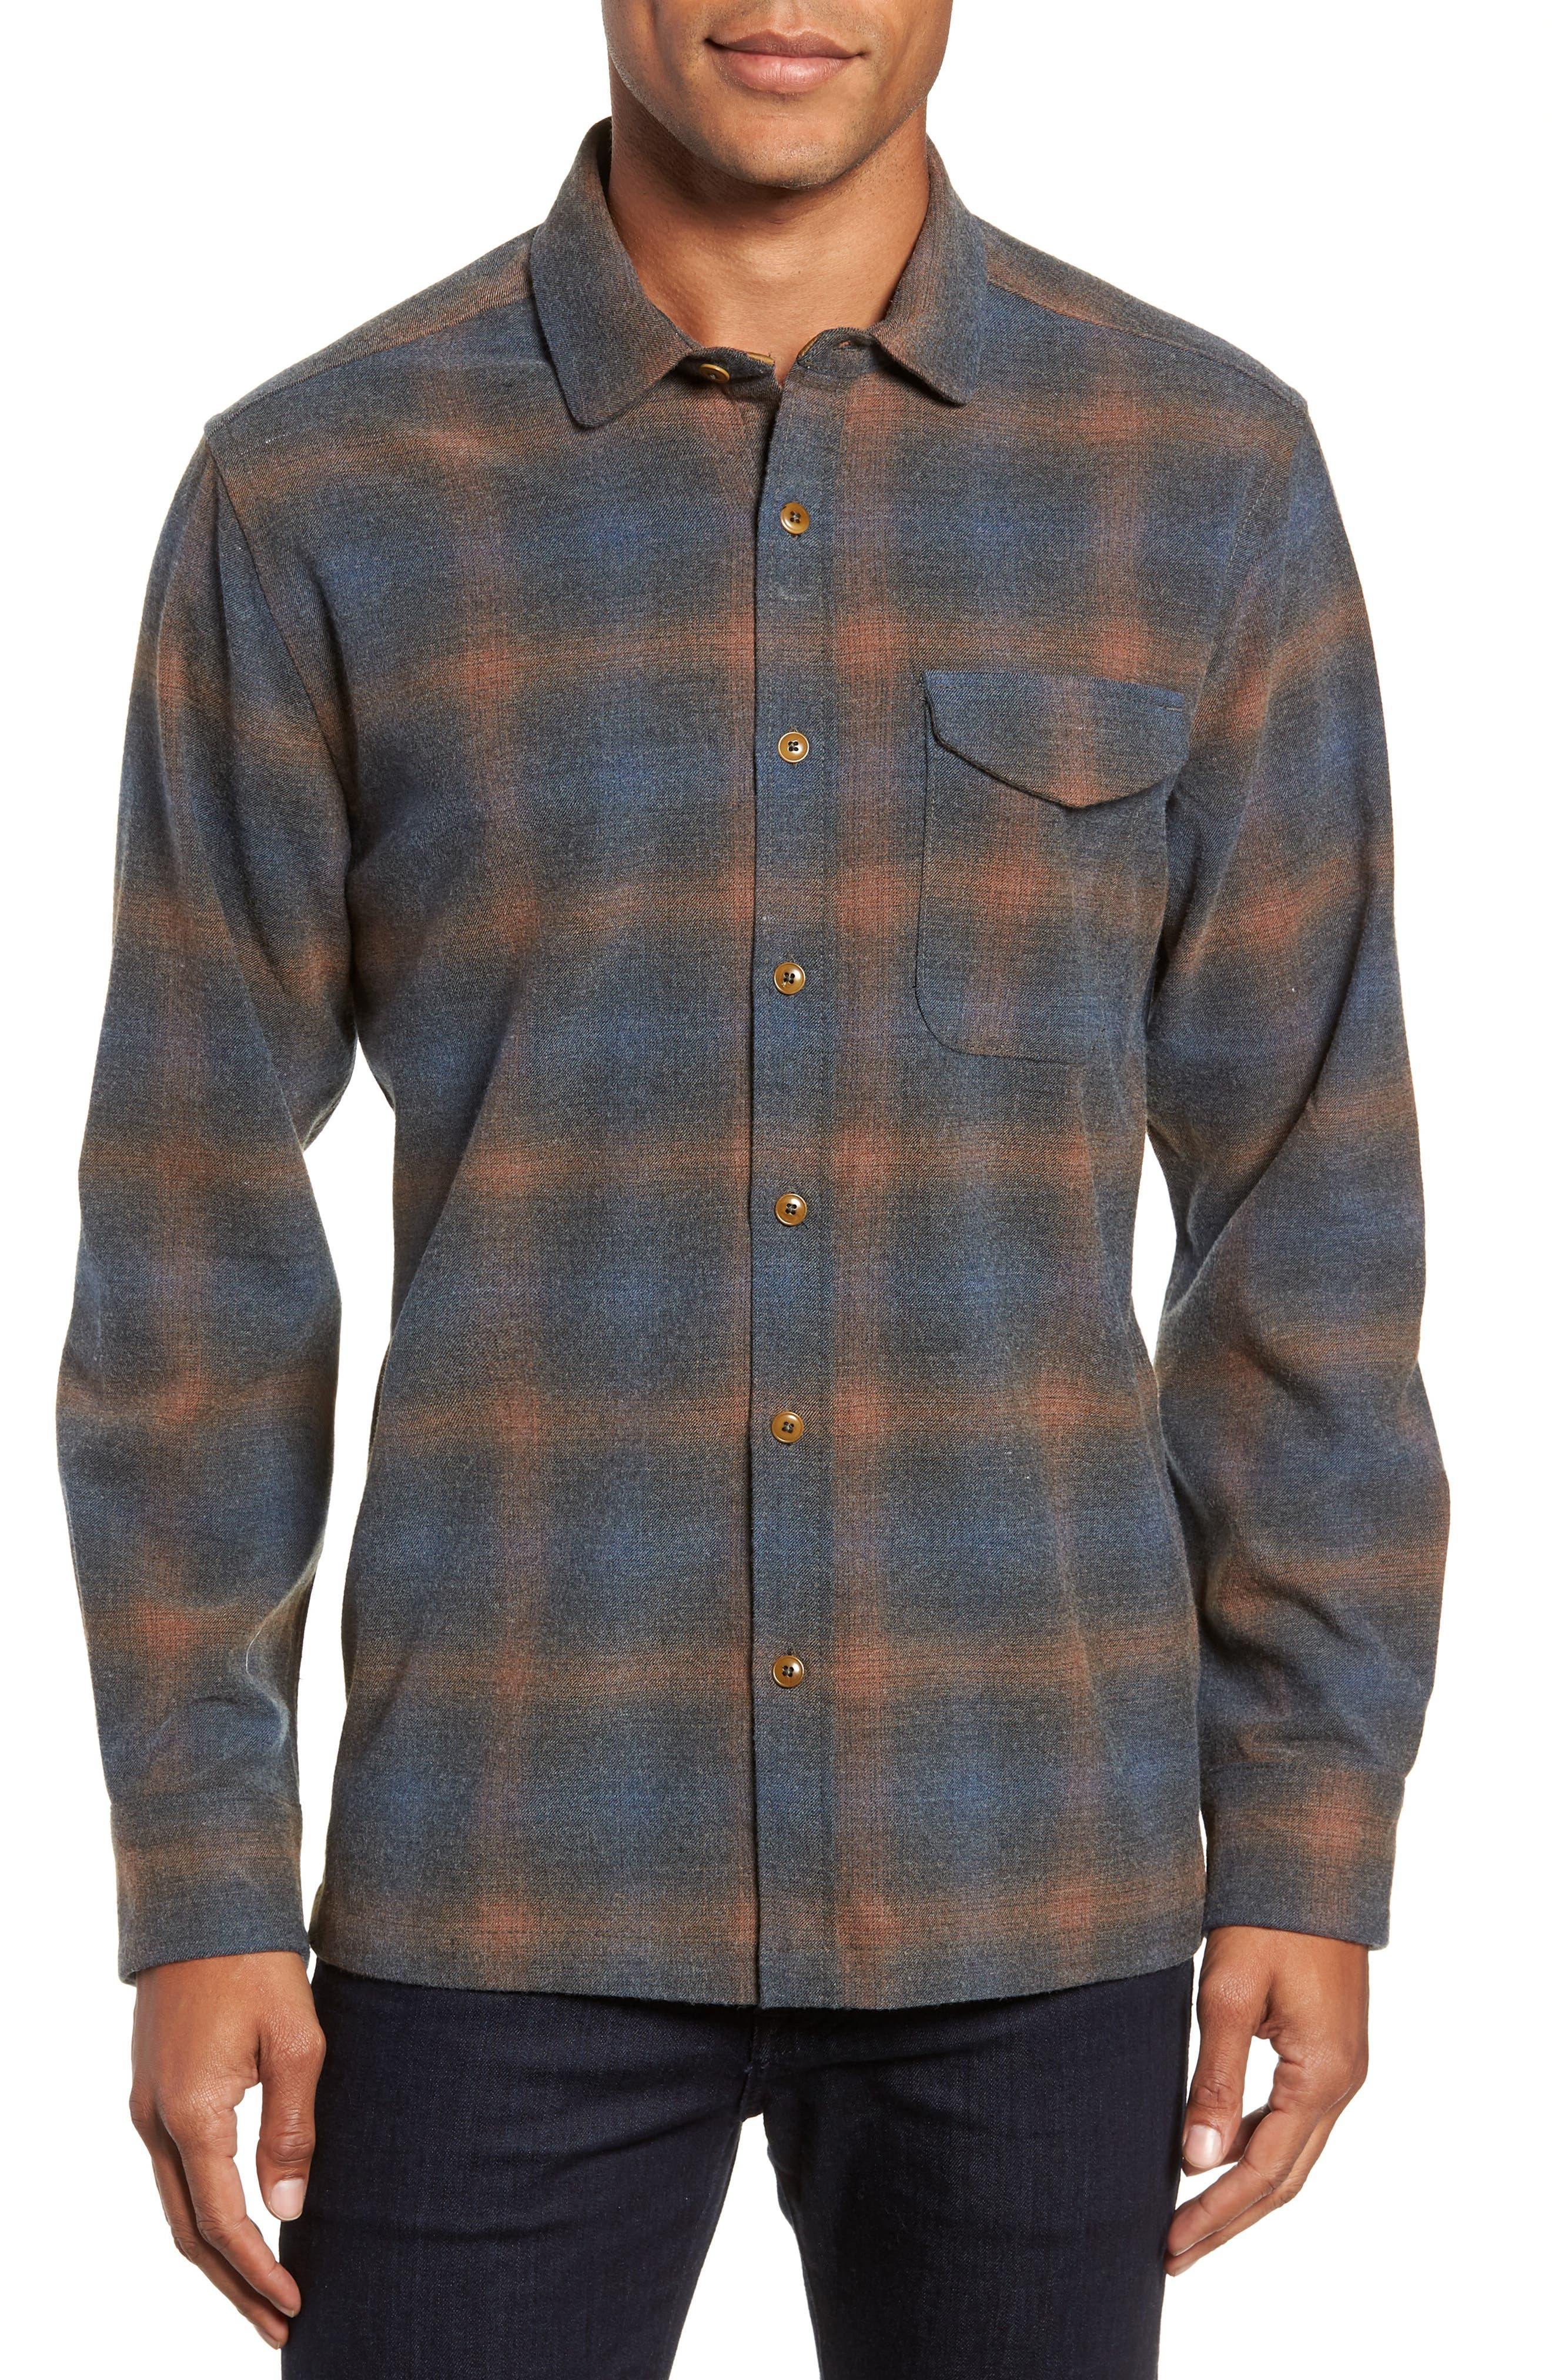 Washburn Regular Fit Plaid Stretch Brushed Flannel Shirt,                             Main thumbnail 1, color,                             BLUE WING TEAL HEATHER